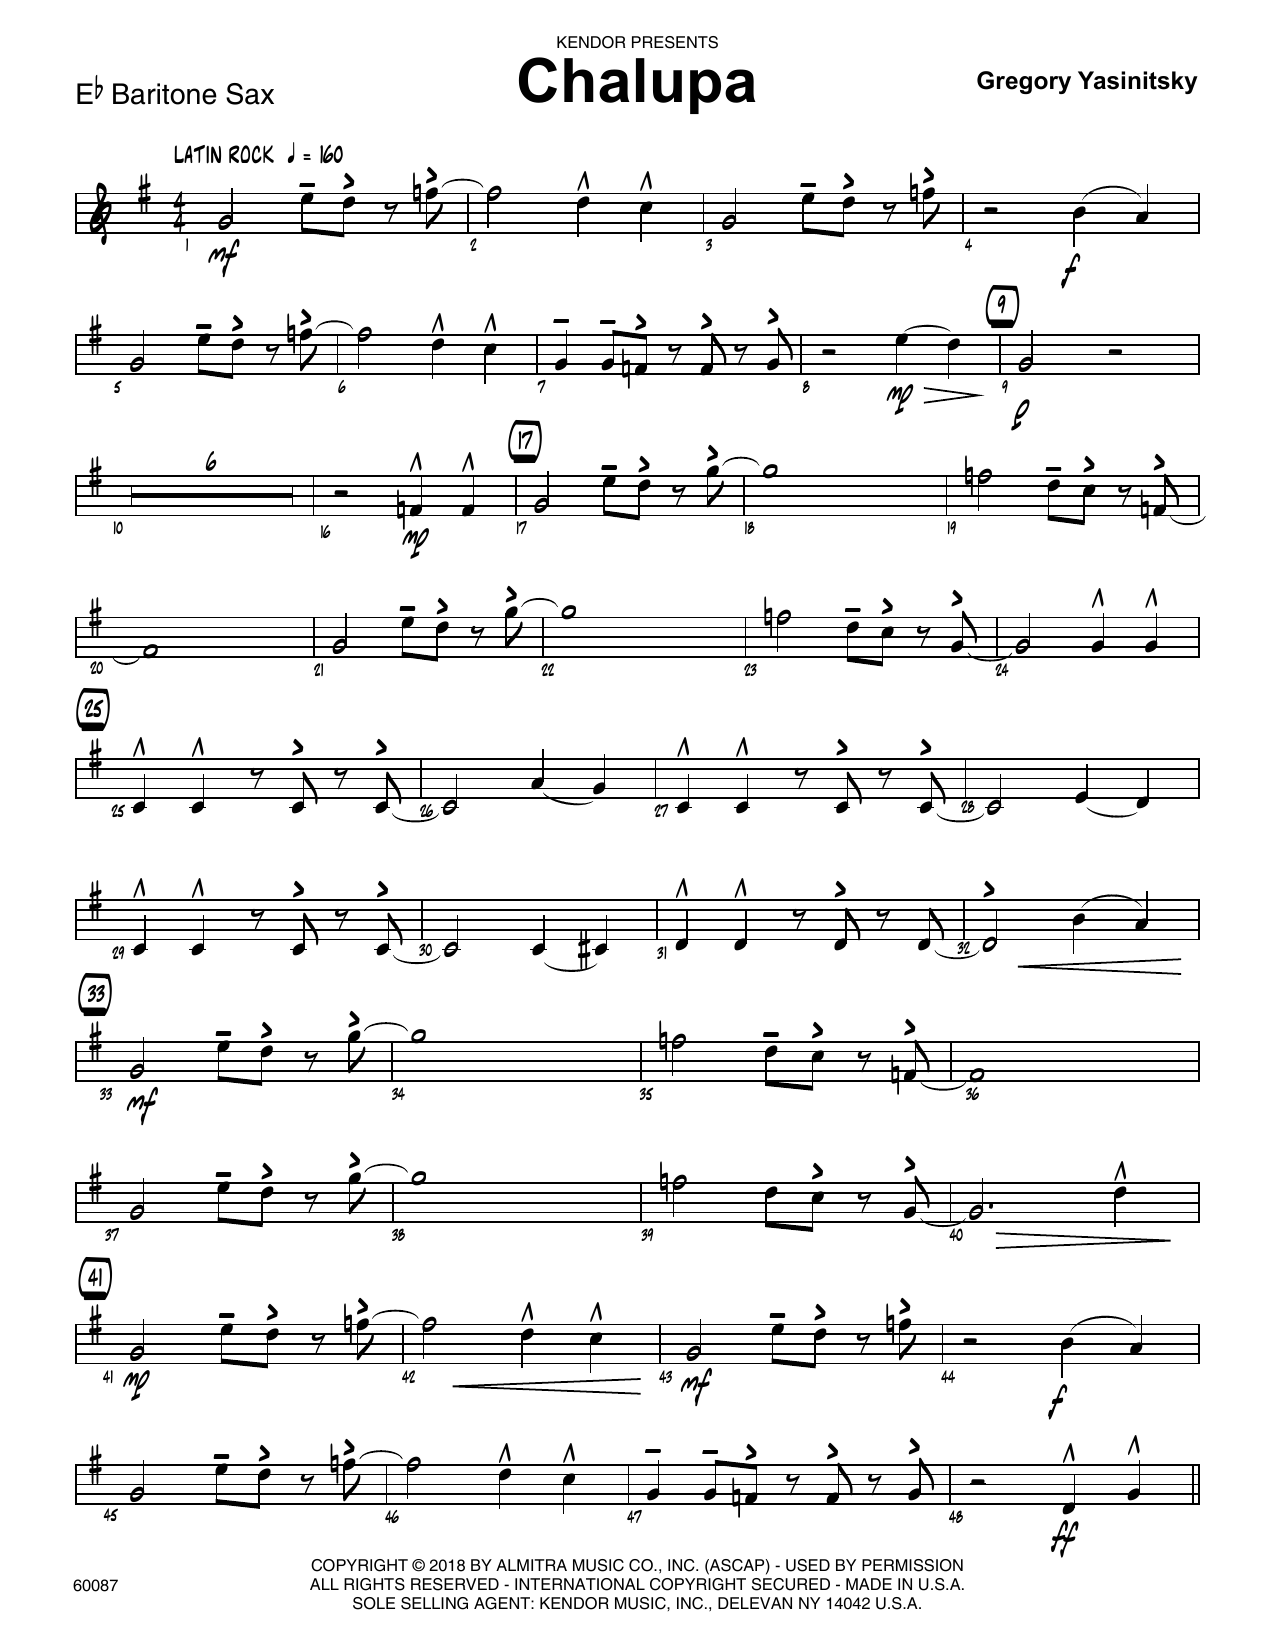 Gregory Yasinitsky Chalupa - Eb Baritone Saxophone sheet music preview music notes and score for Jazz Ensemble including 3 page(s)